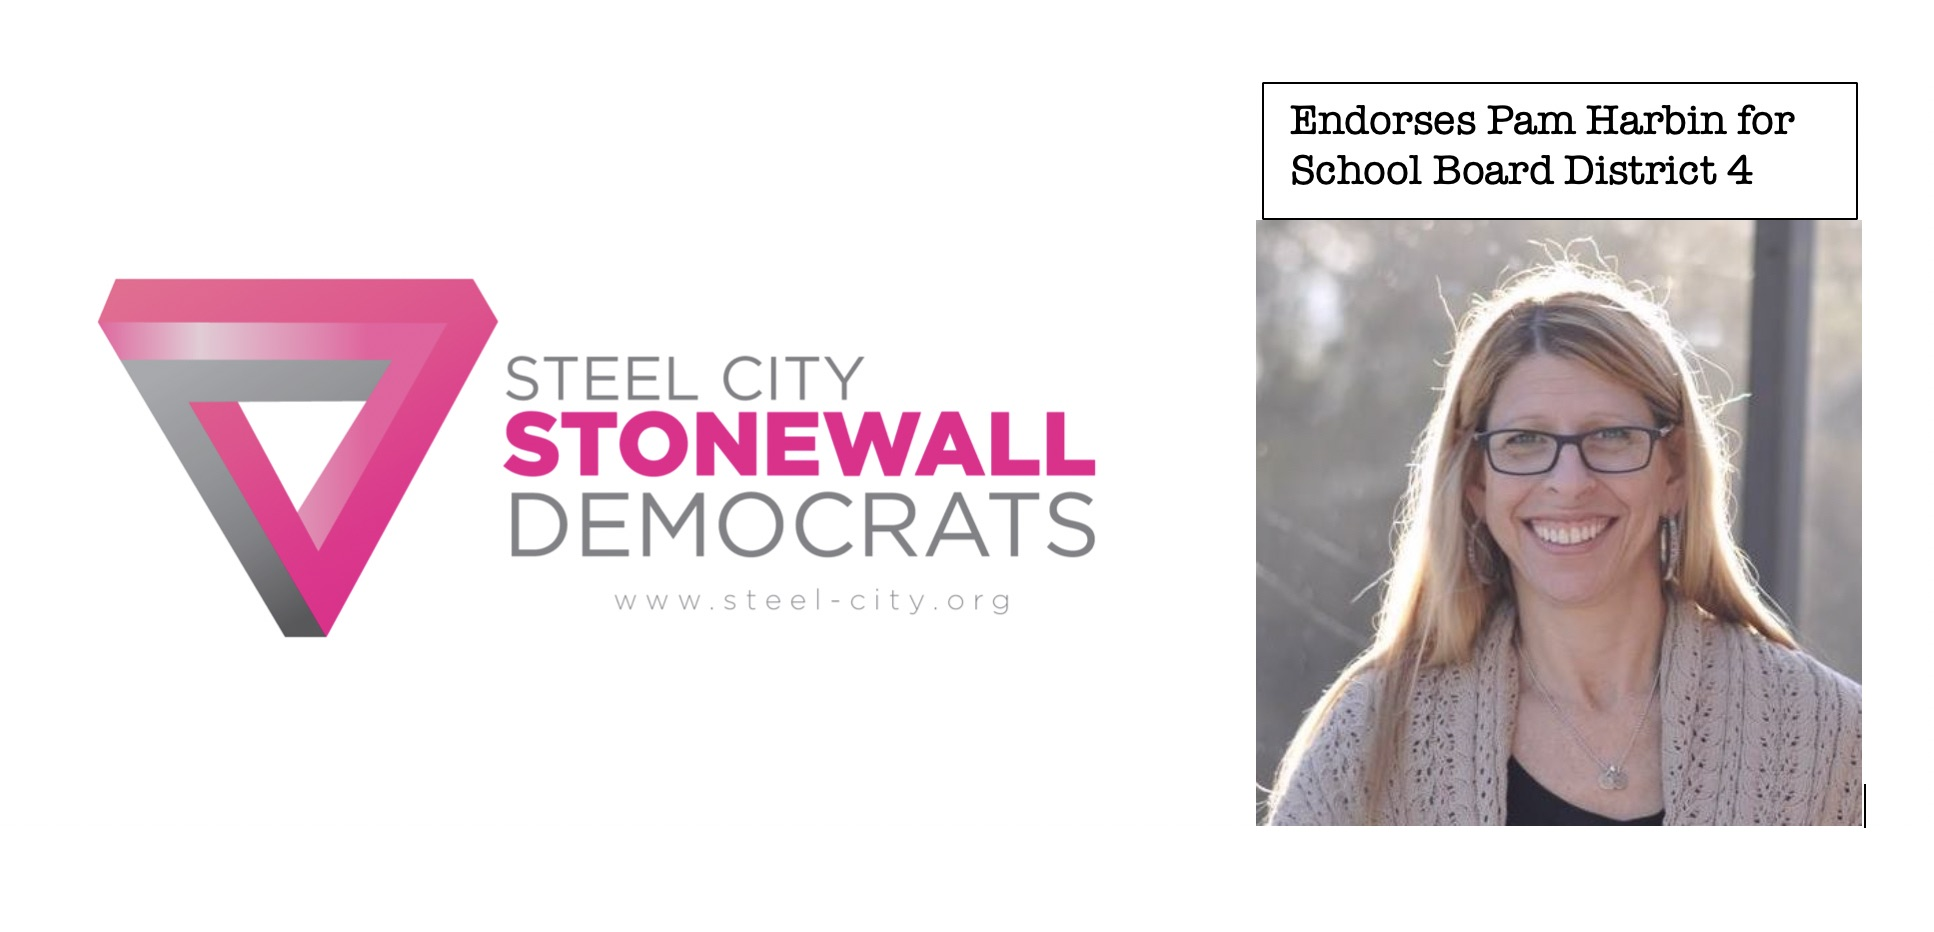 Harbin Steel City Stonewall Democrats.jpg